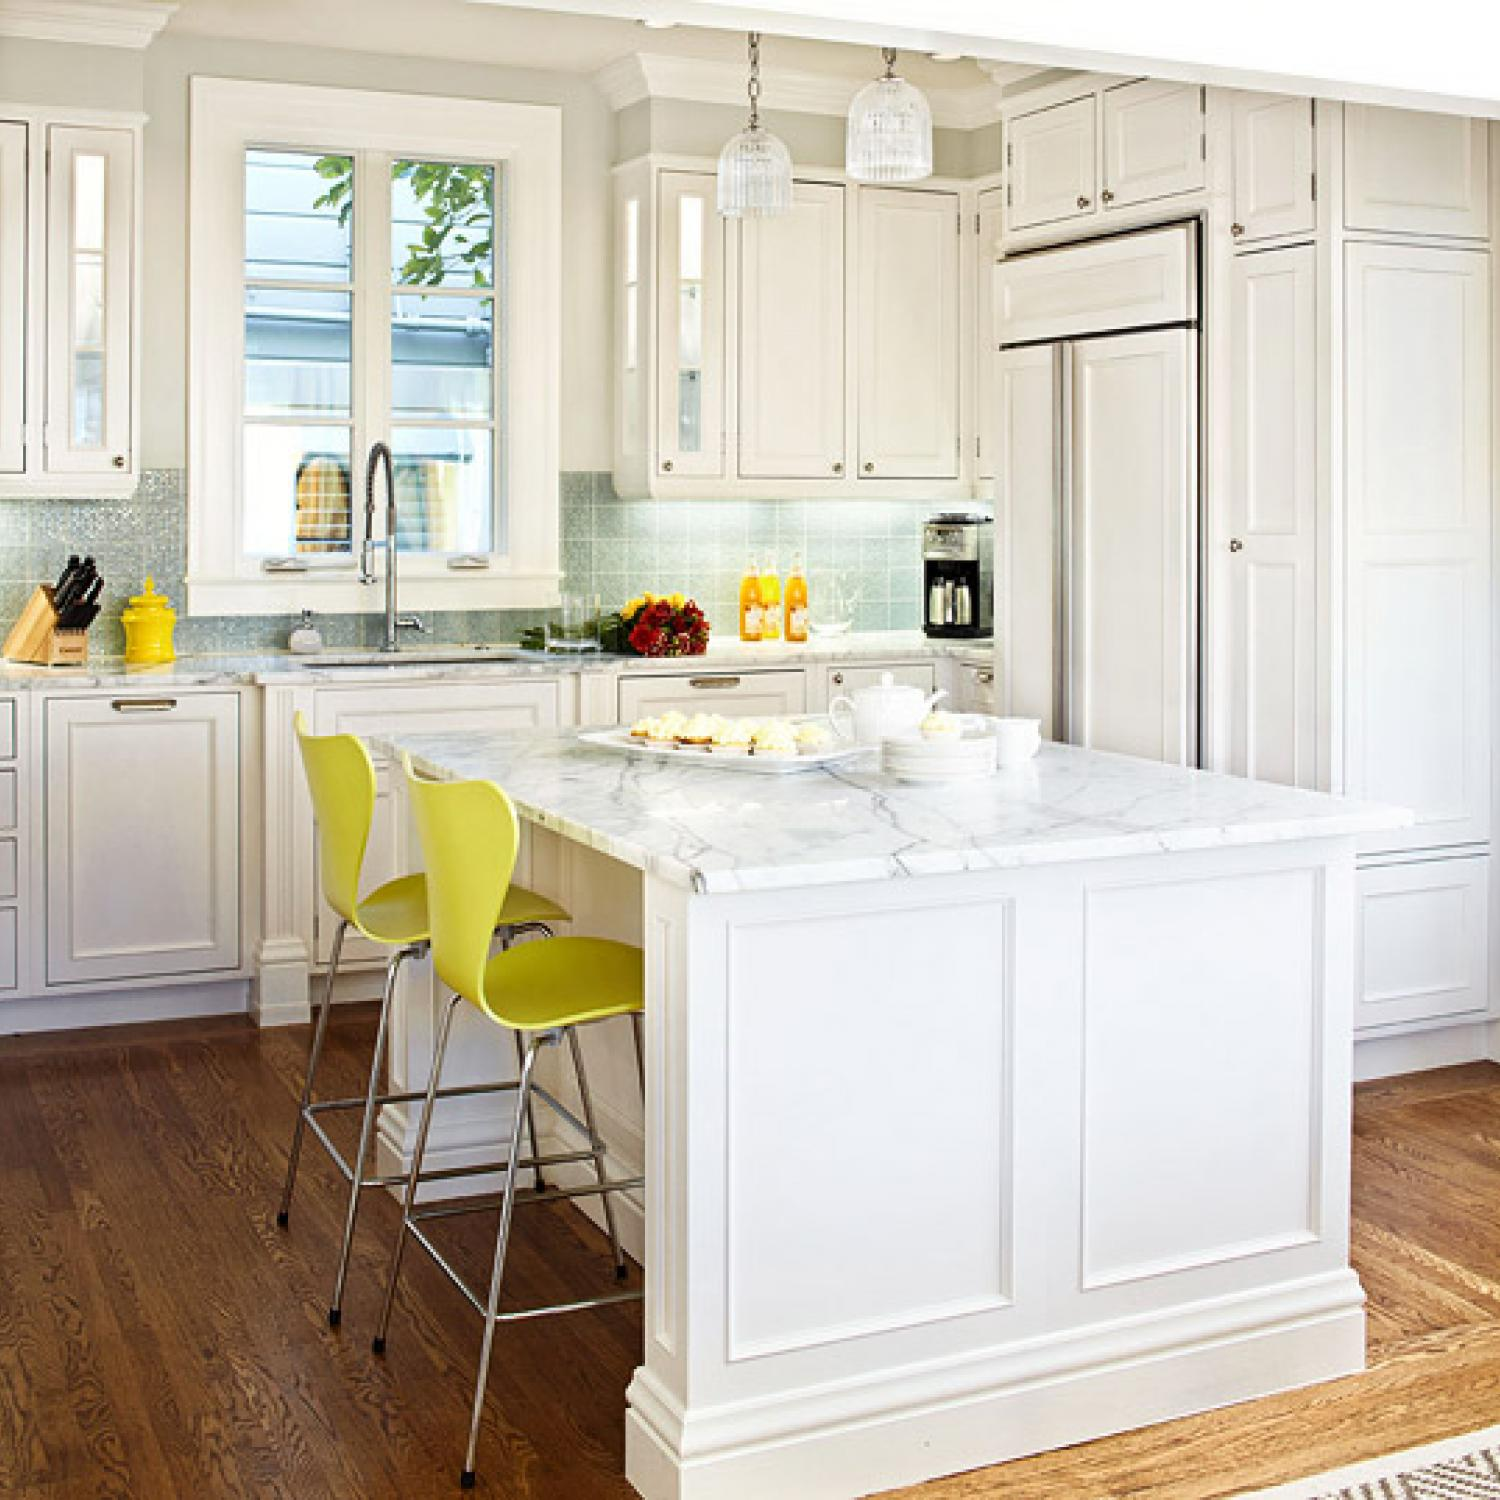 Design ideas for white kitchens traditional home for Small white kitchen ideas